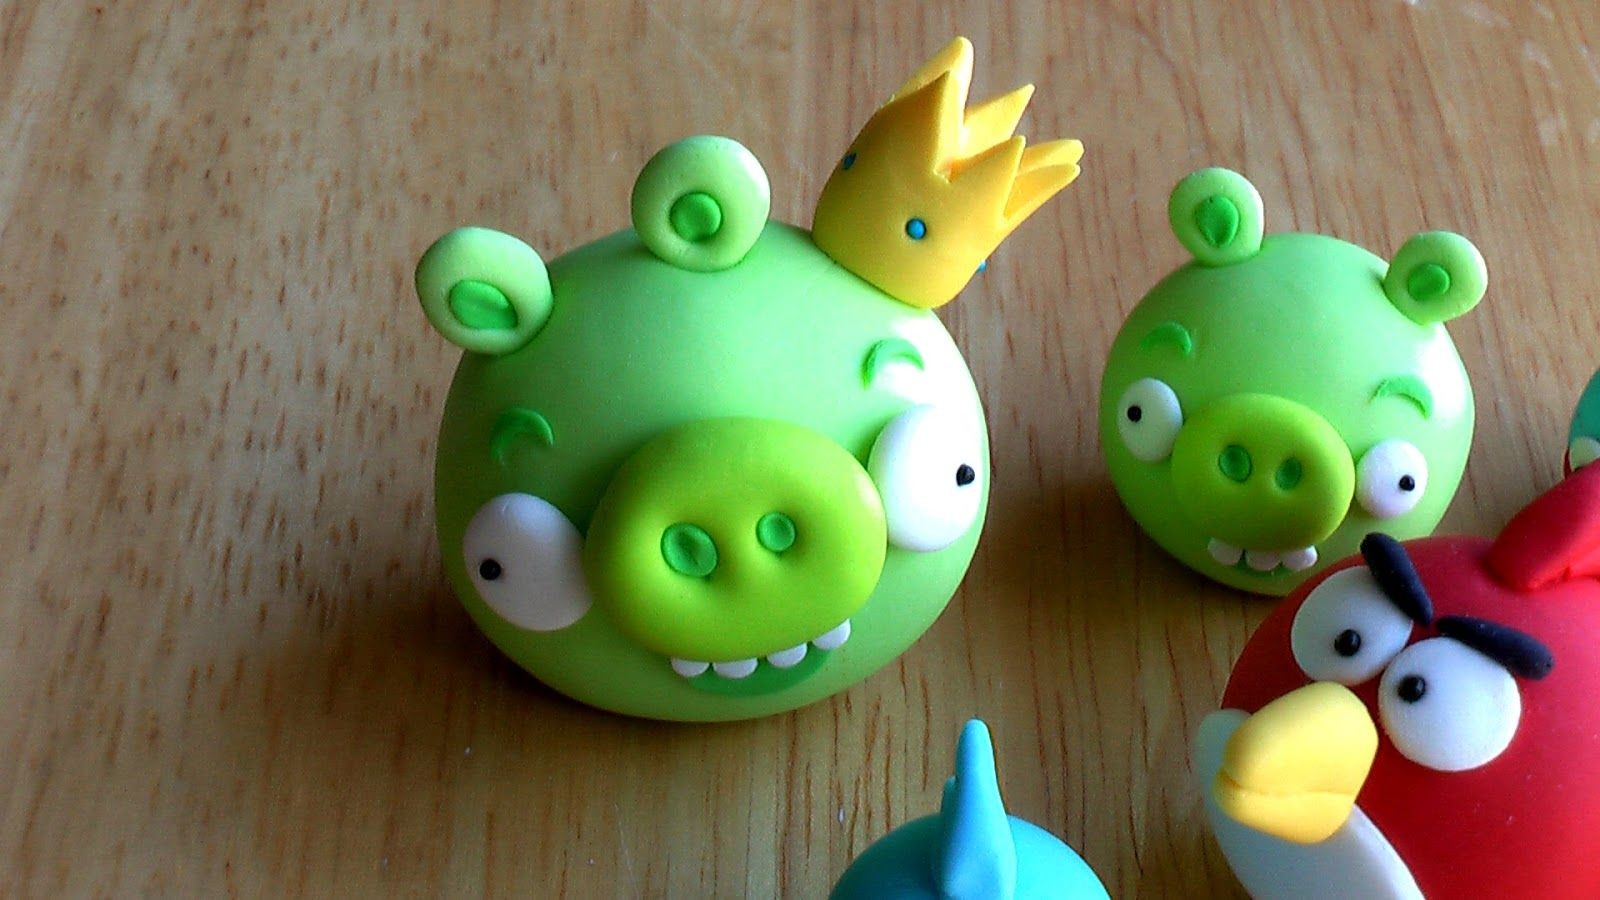 Edible Angry Birds Cake Toppers - these are really good